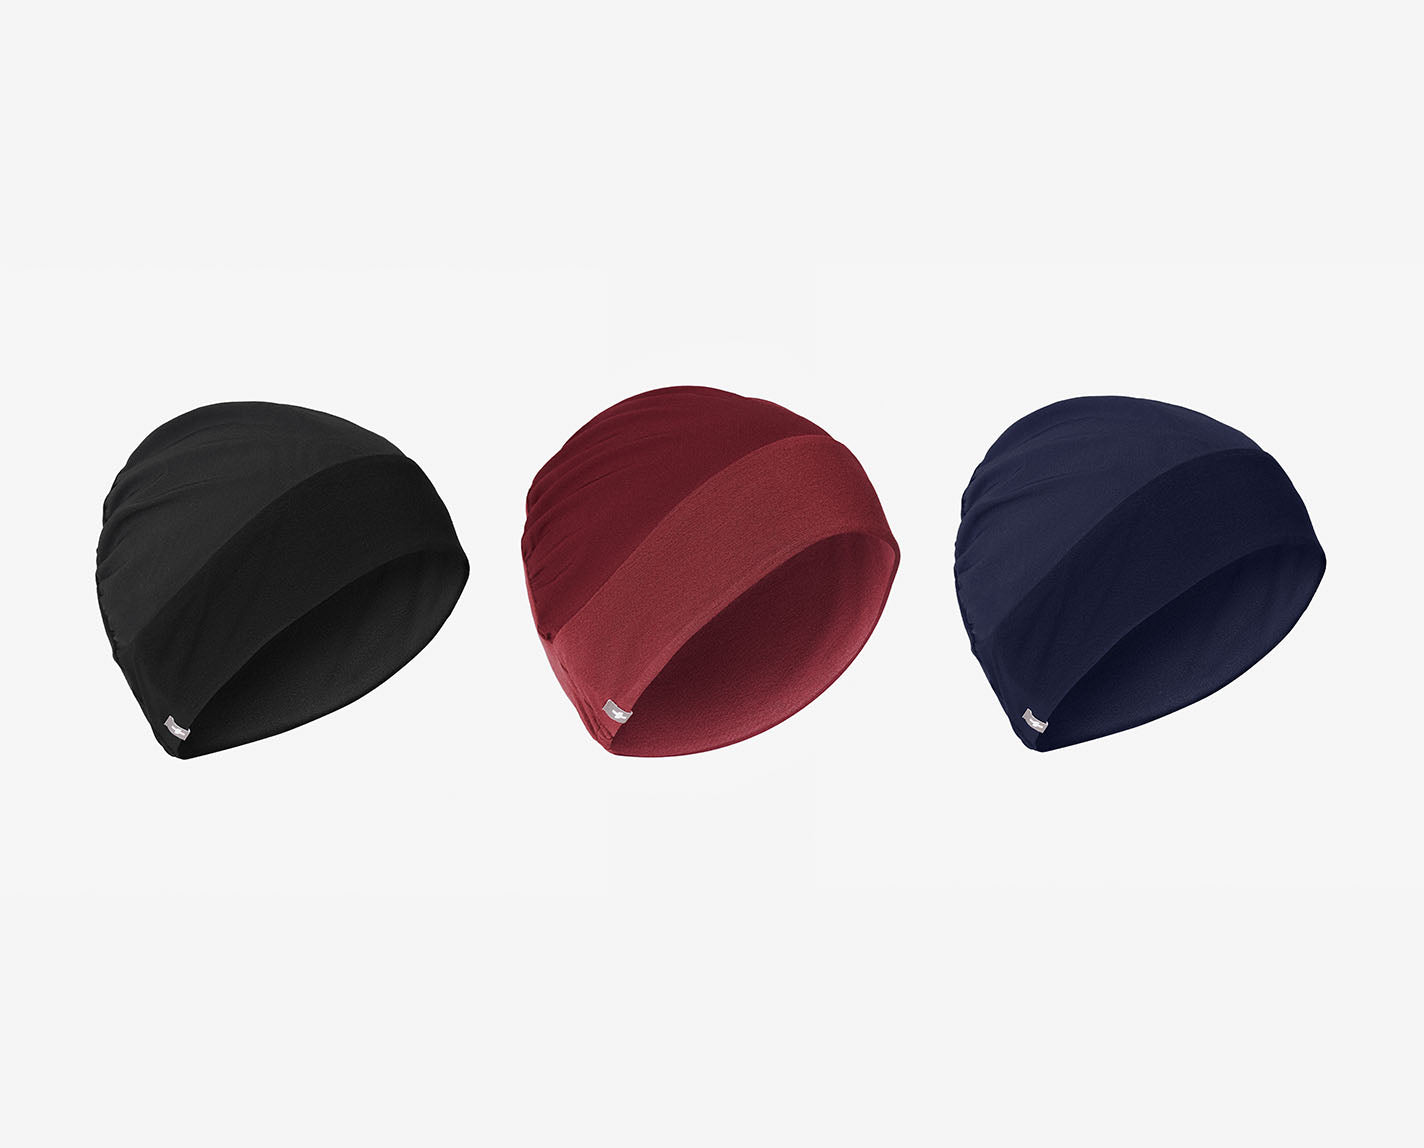 Our Modern Expandable Scrub Caps are 100% Awesome. Classic cap design with modern technology and are breathable, and features our SuperSoft fabric lining.